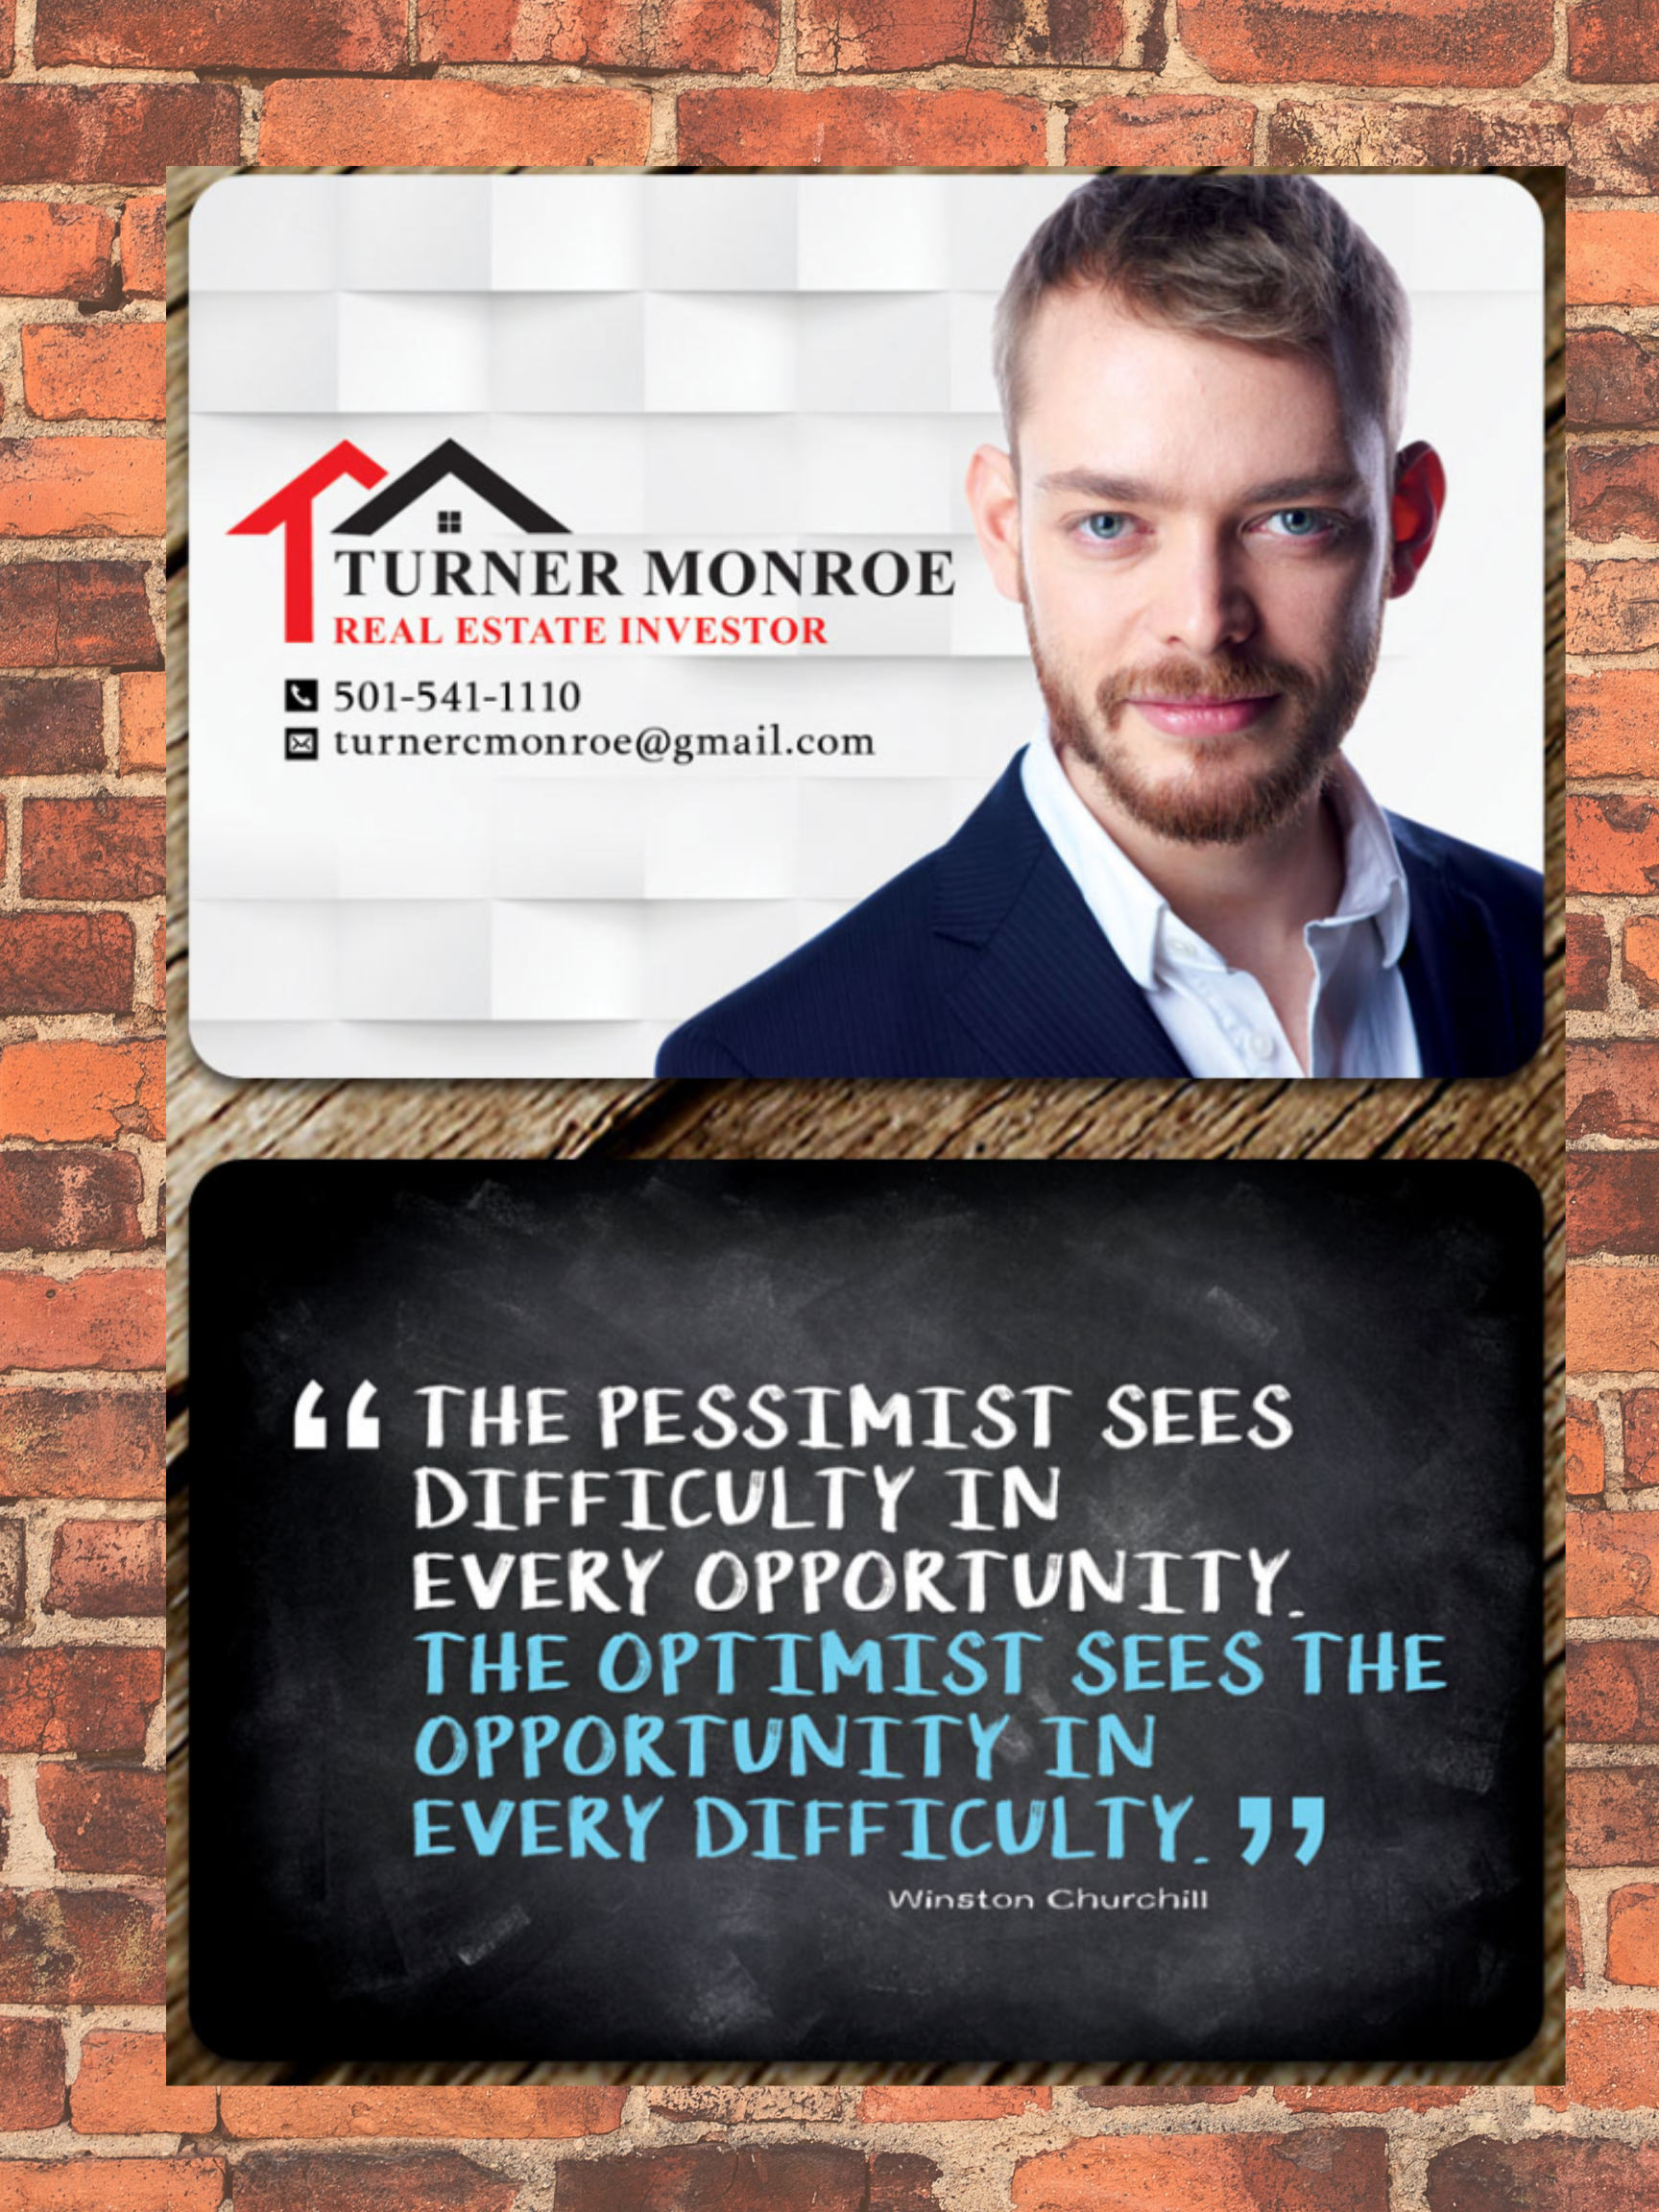 real estate investor business cards with inspirational quote